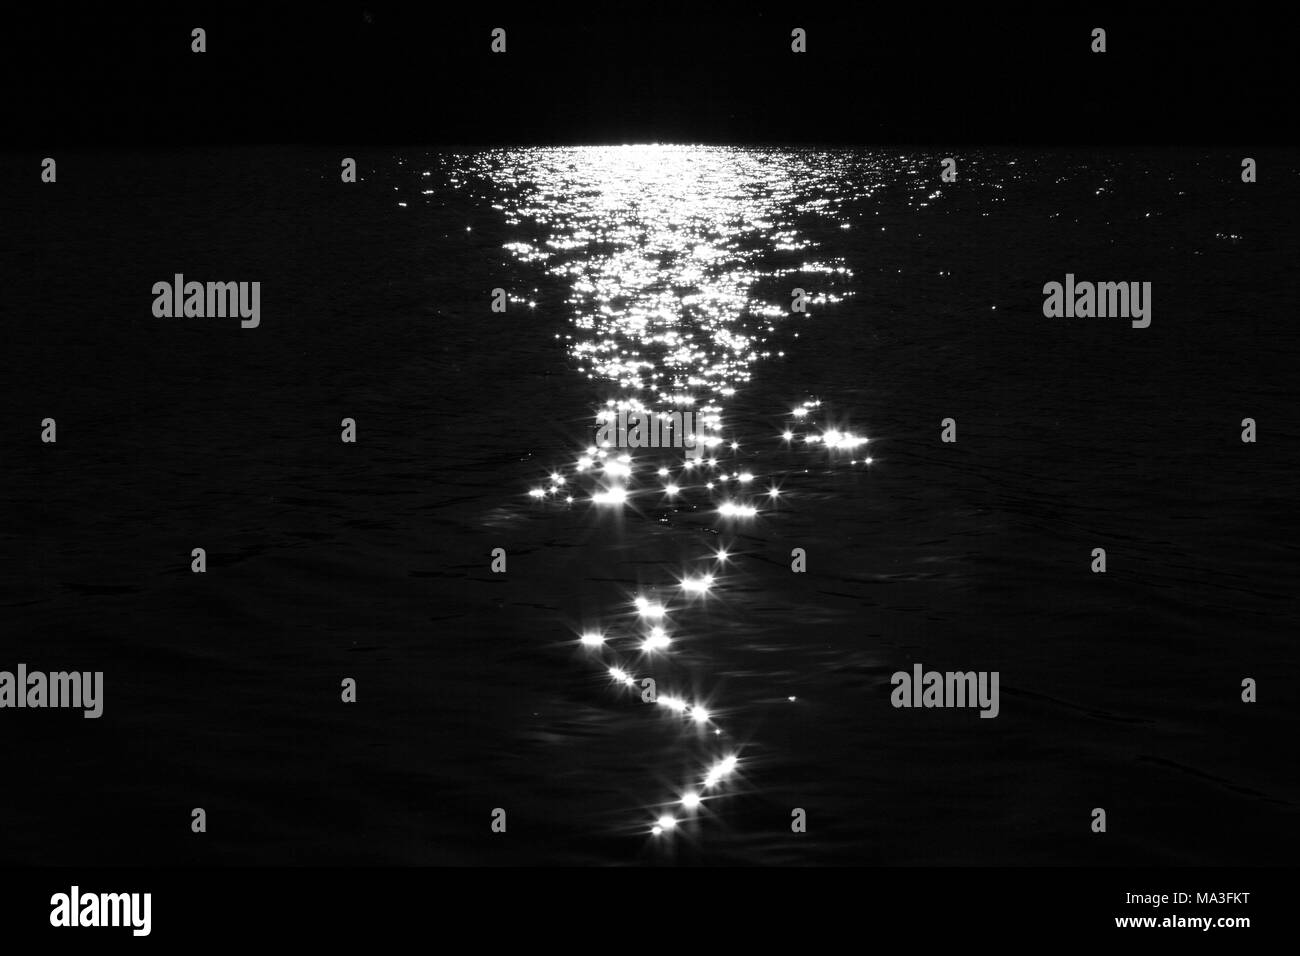 Reflection of sunlight on water - Stock Image